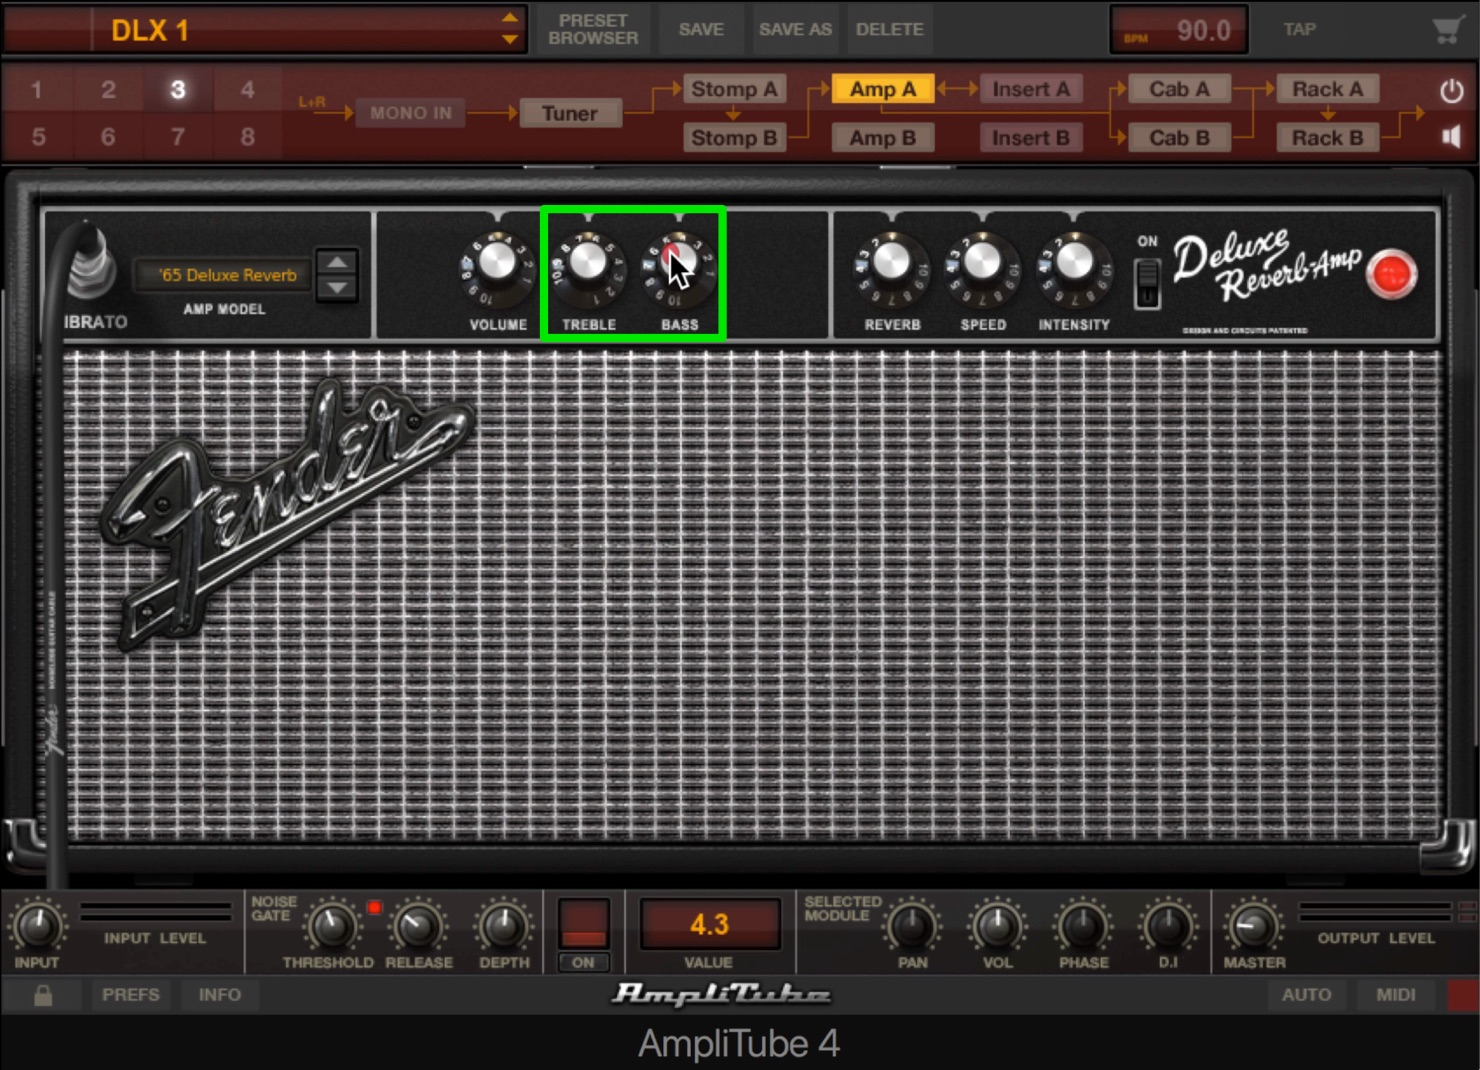 Amplitube4-Fender-Deluxe-Reverb-bass-treble